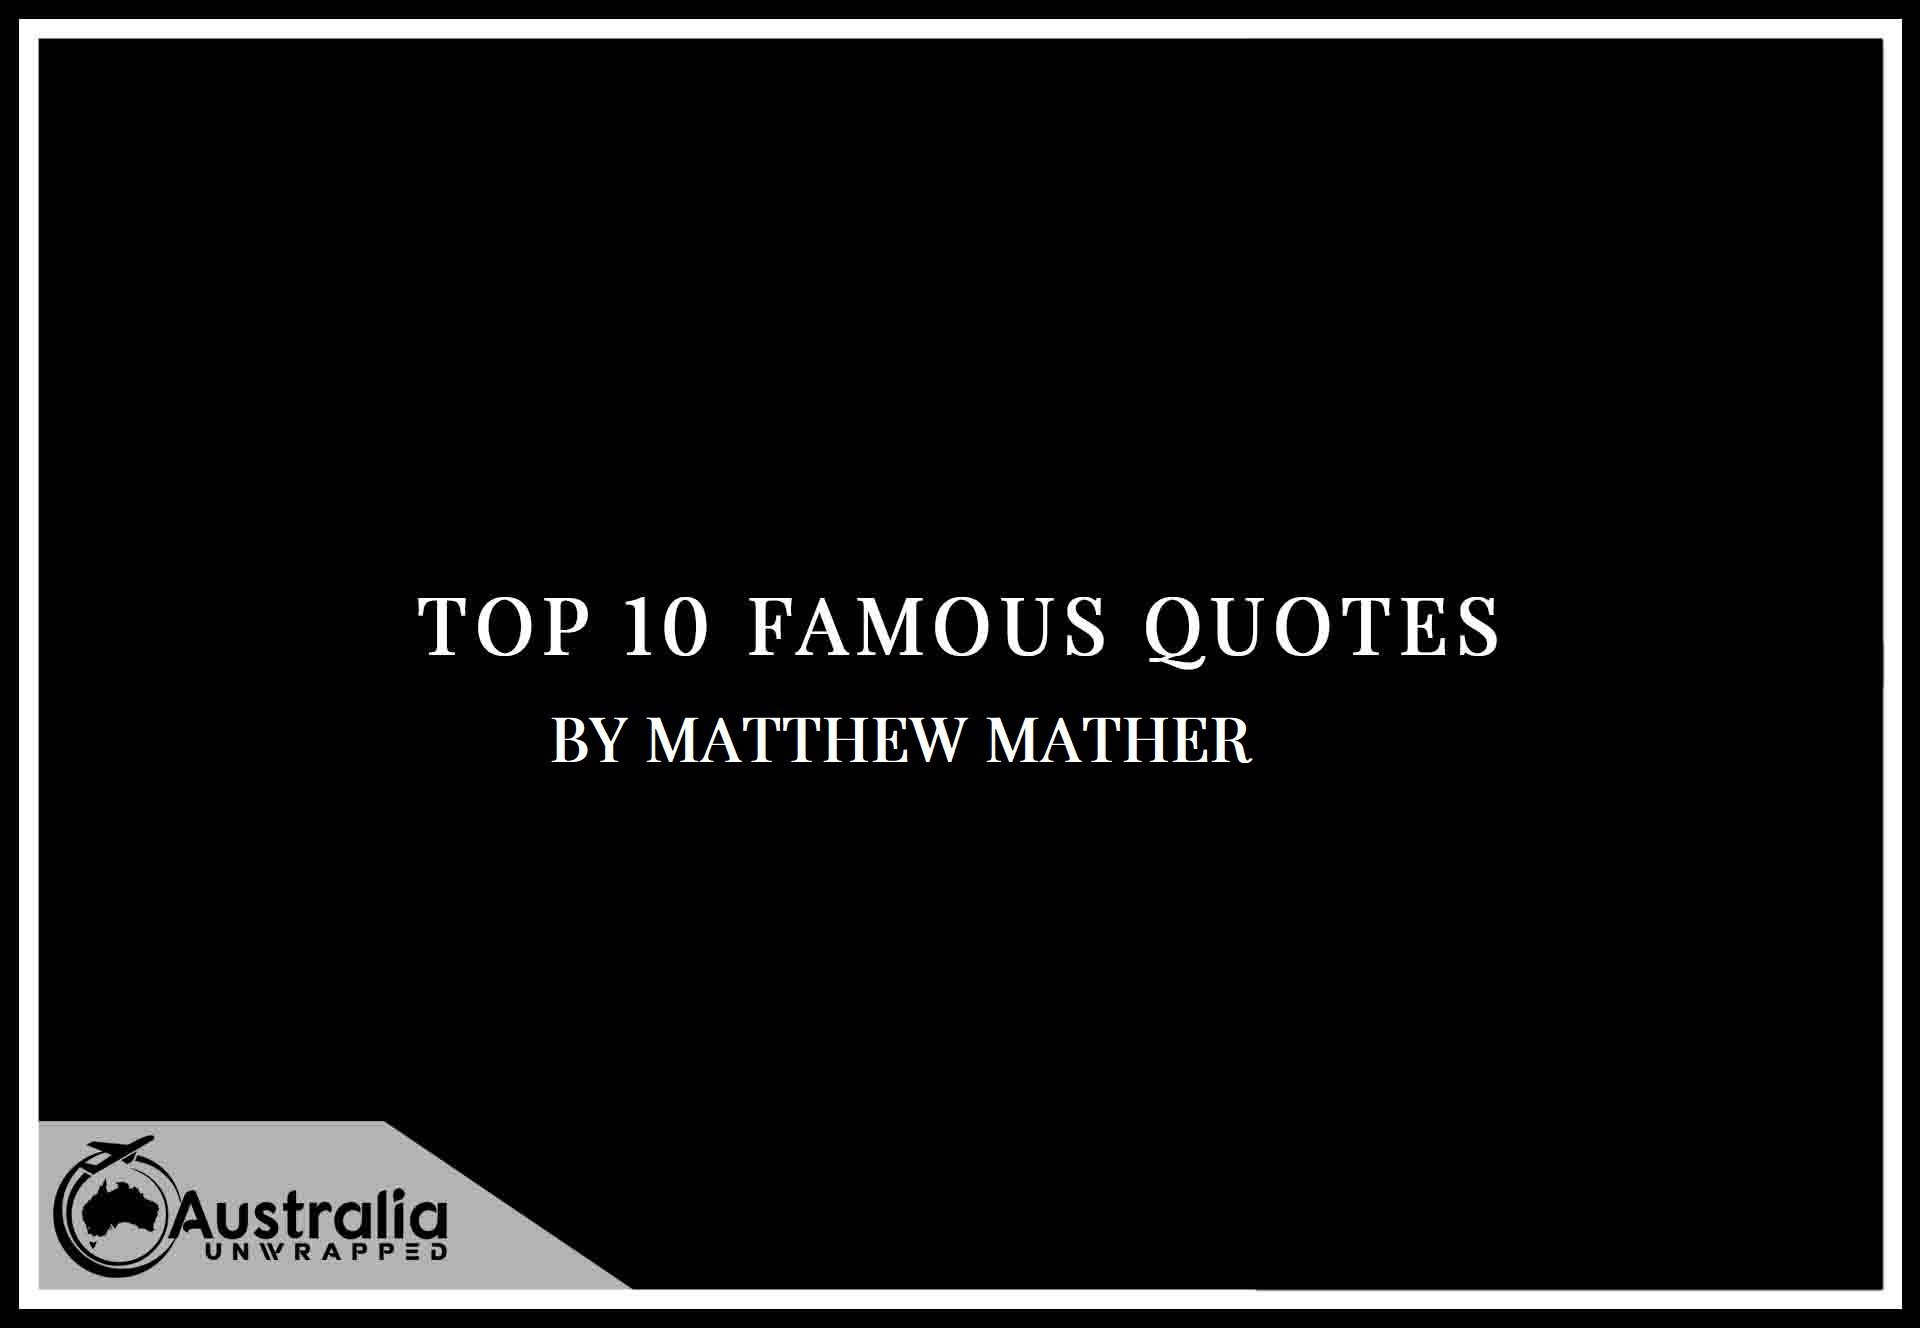 Top 10 Famous Quotes by Author Matthew Mather